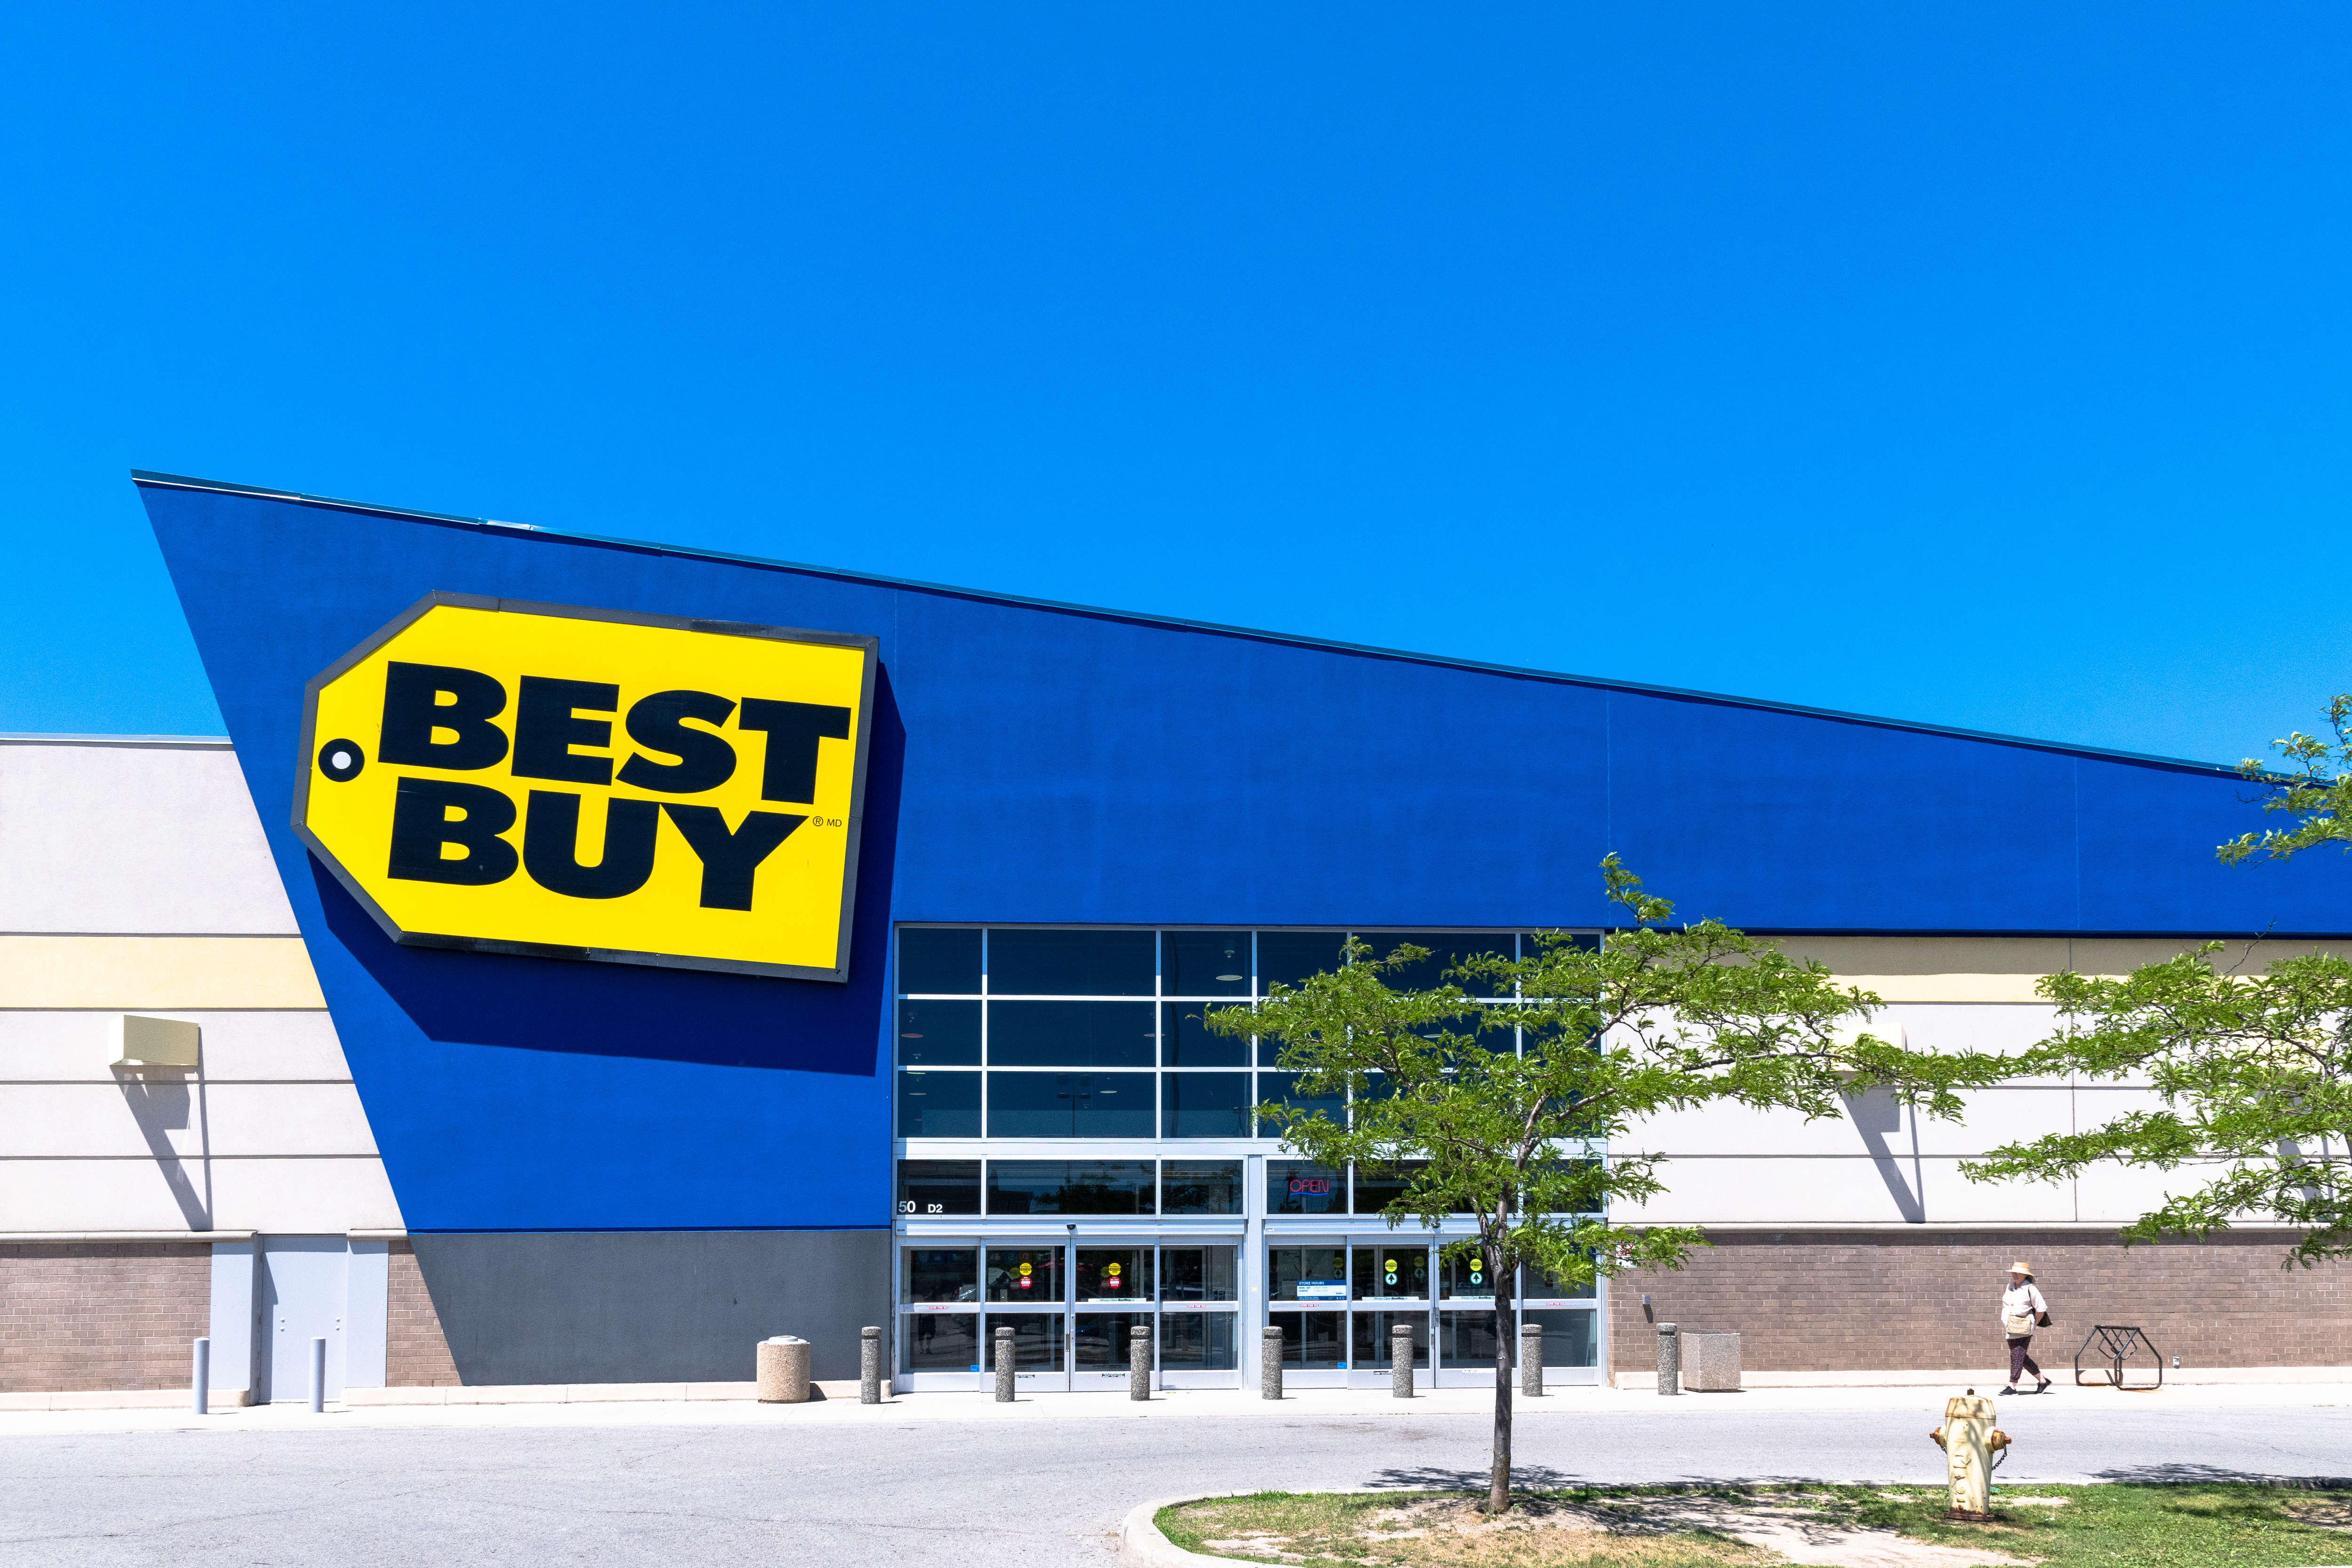 Entrance of a Best Buy deal during a day with blue clarity